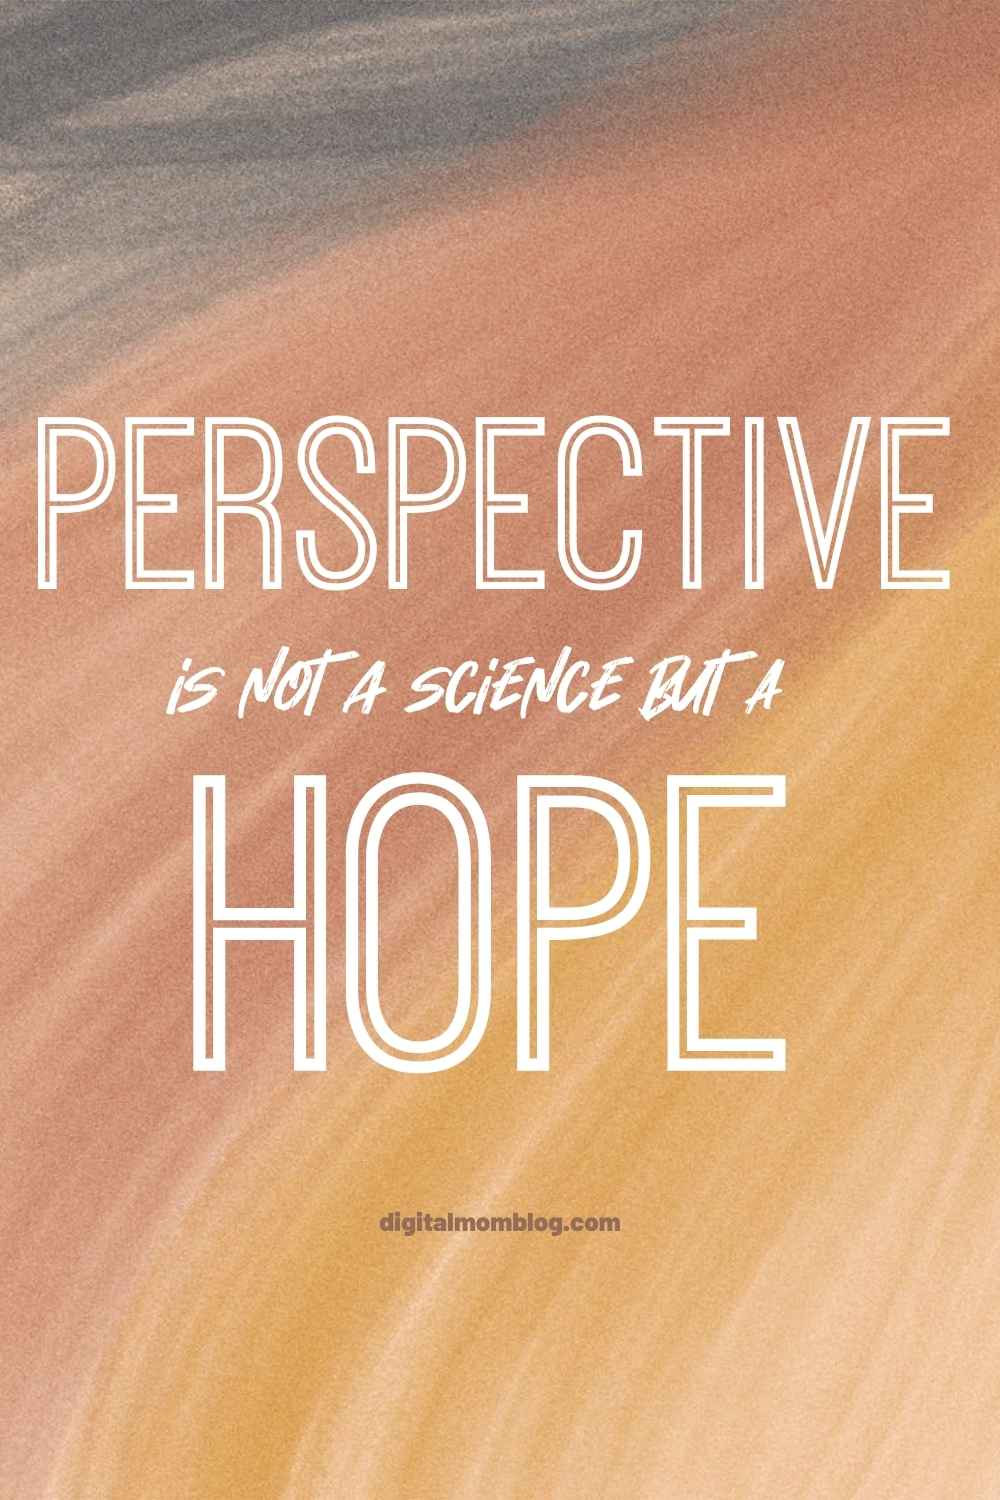 perspective quote - perspective is not a science but a hope